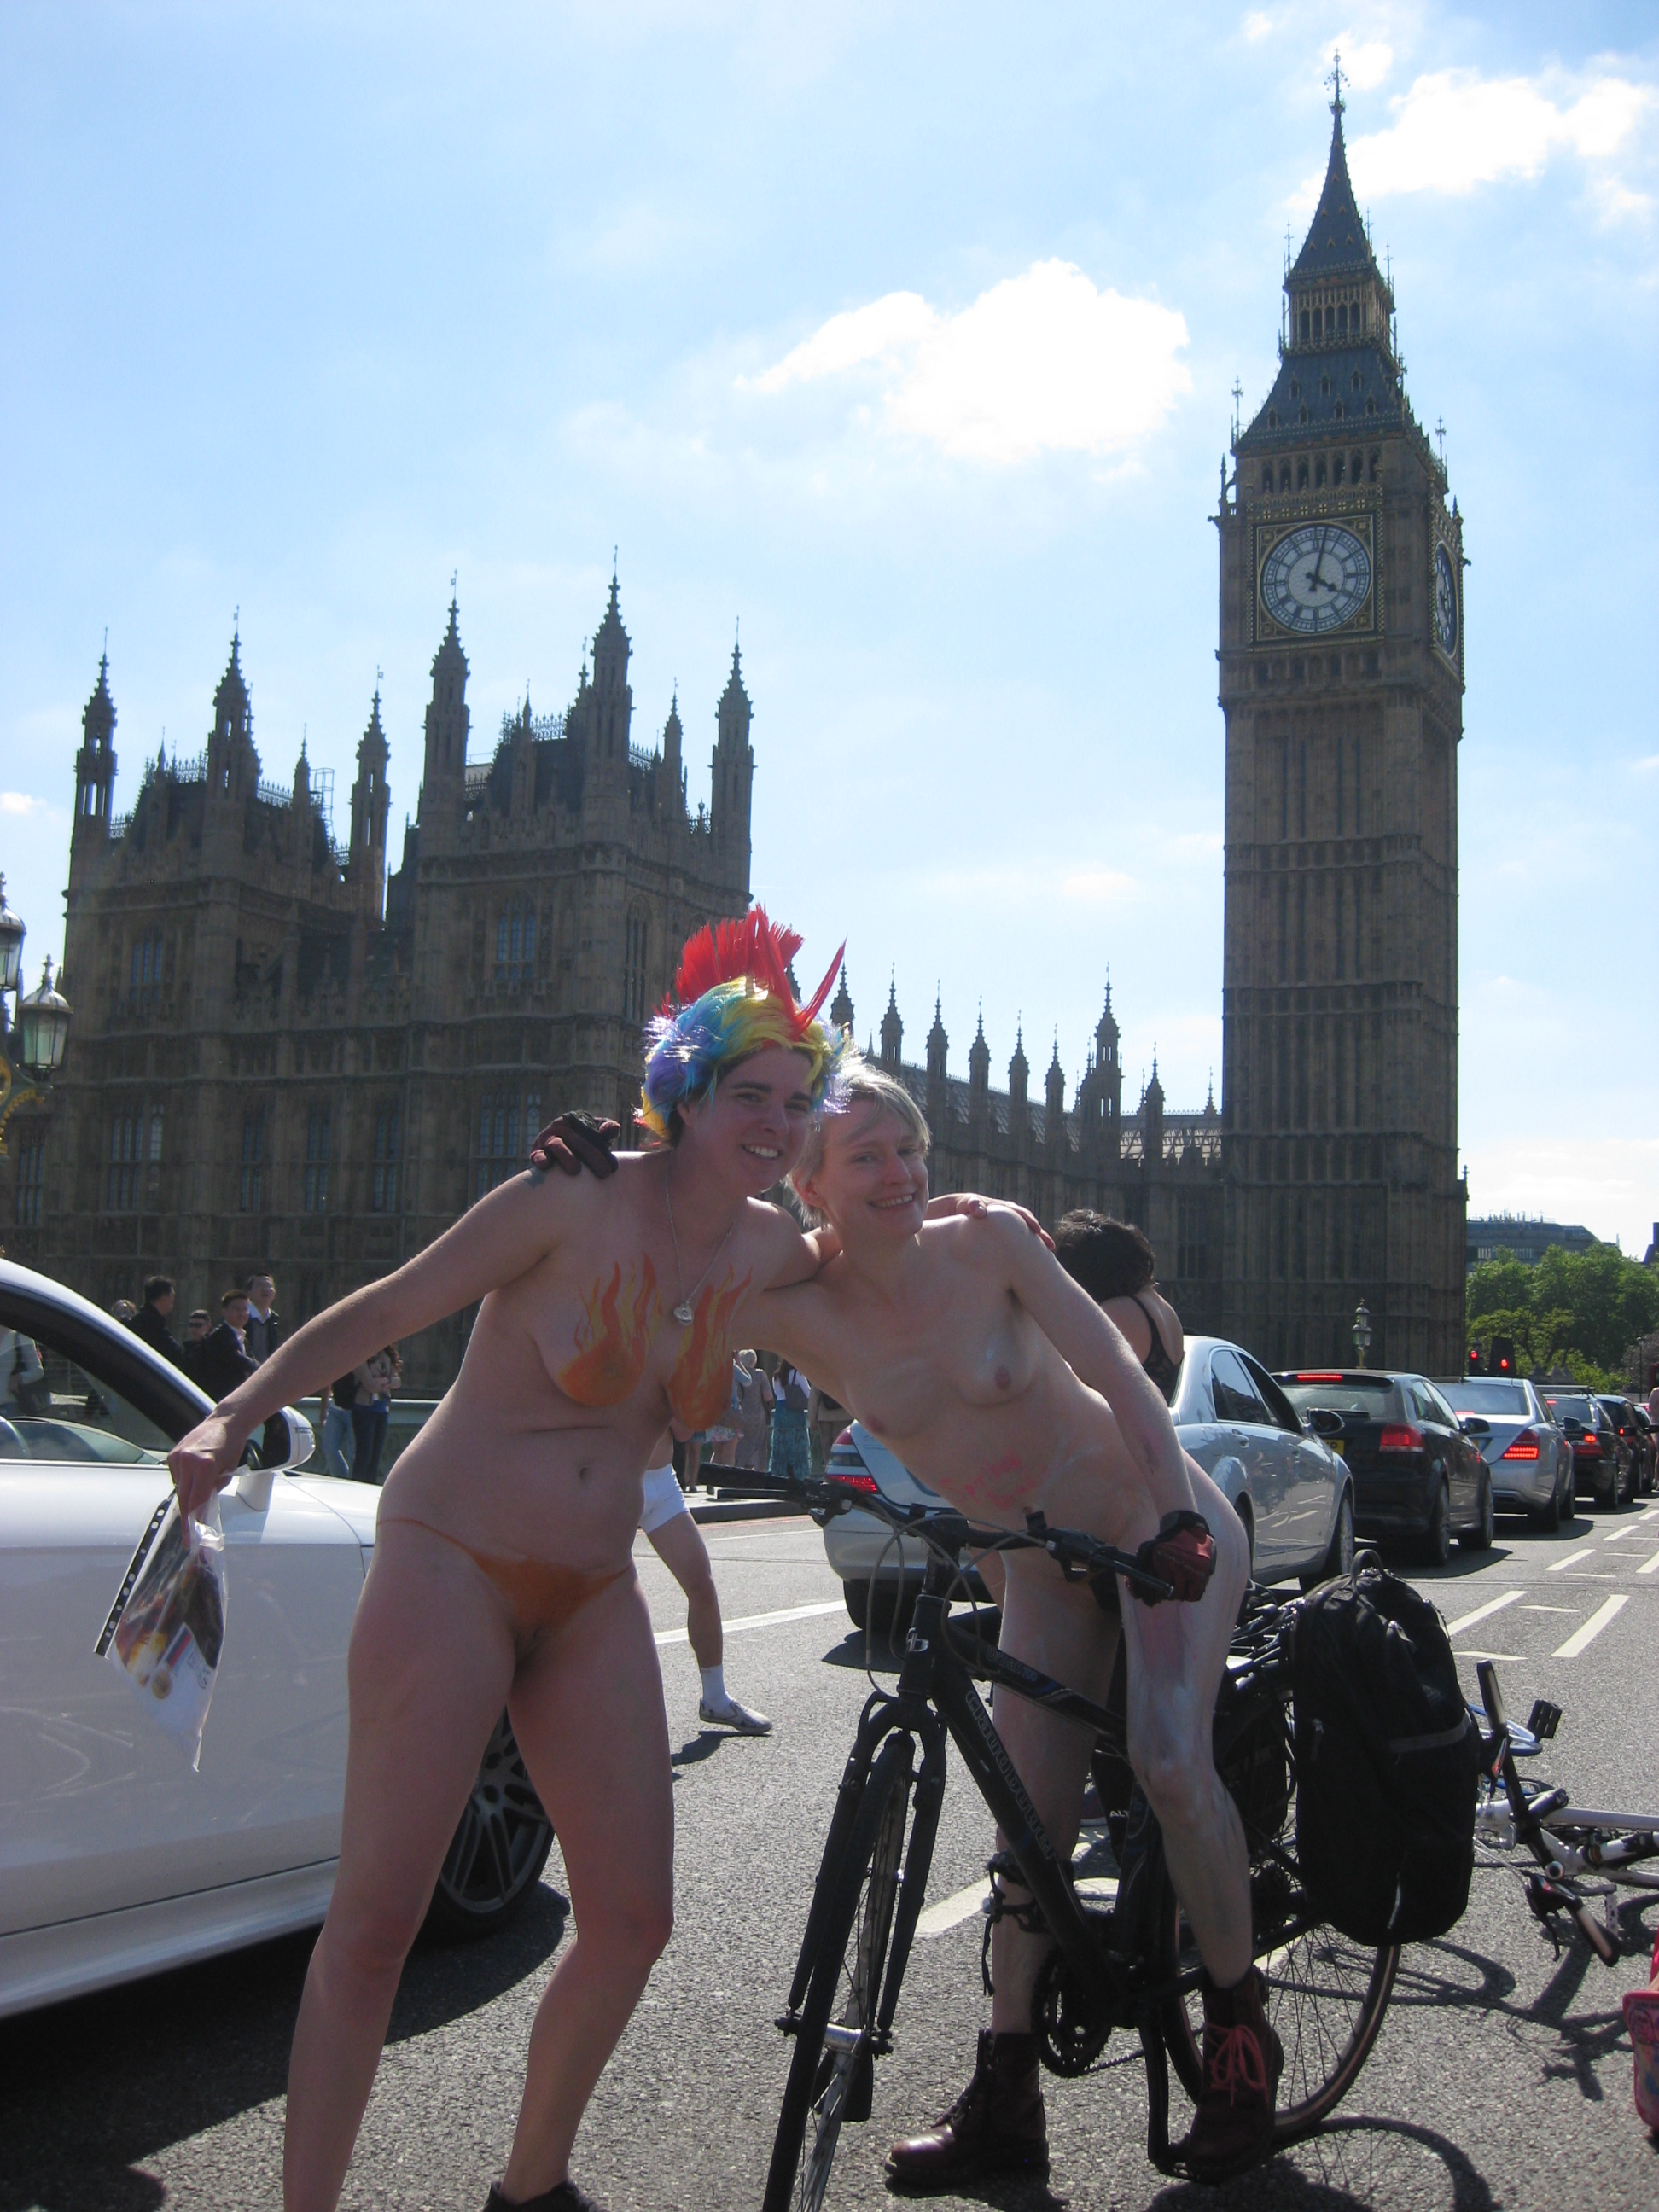 with Natasha, who managed to raise money whilst riding (and being photographed) for Help for Heroes